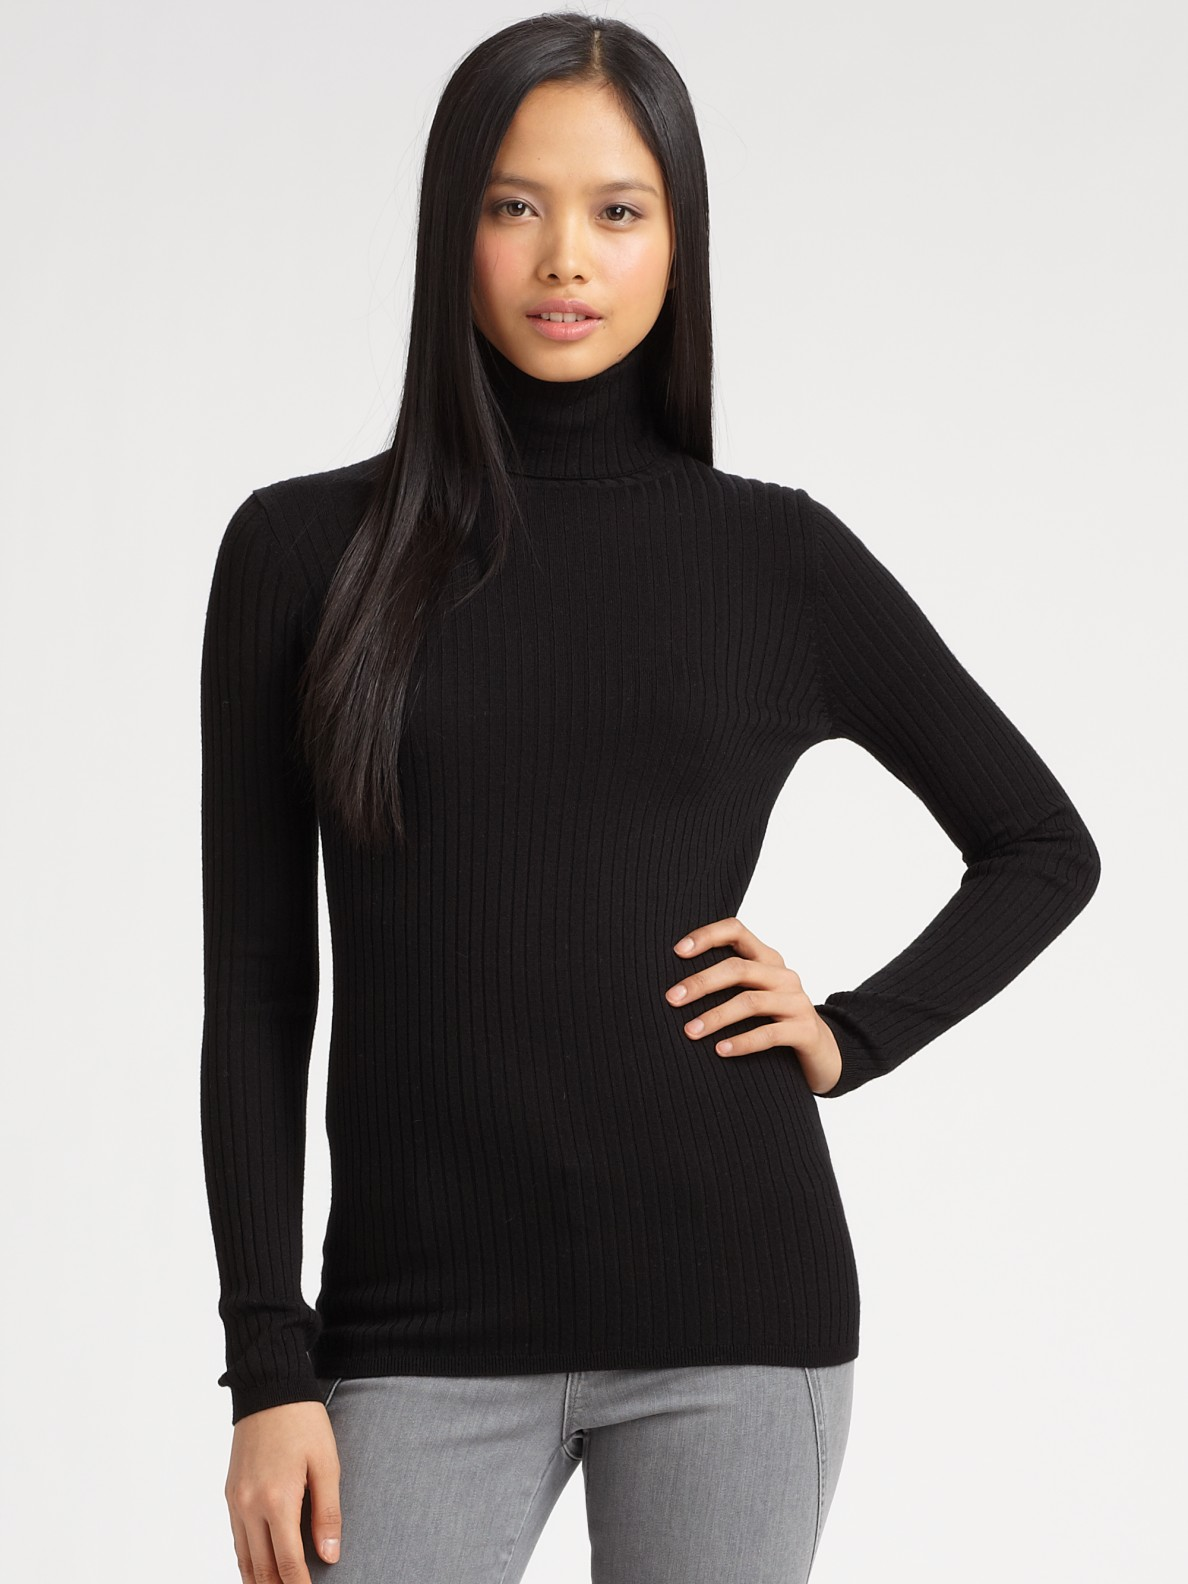 Find great deals on eBay for womens black turtleneck. Shop with confidence.